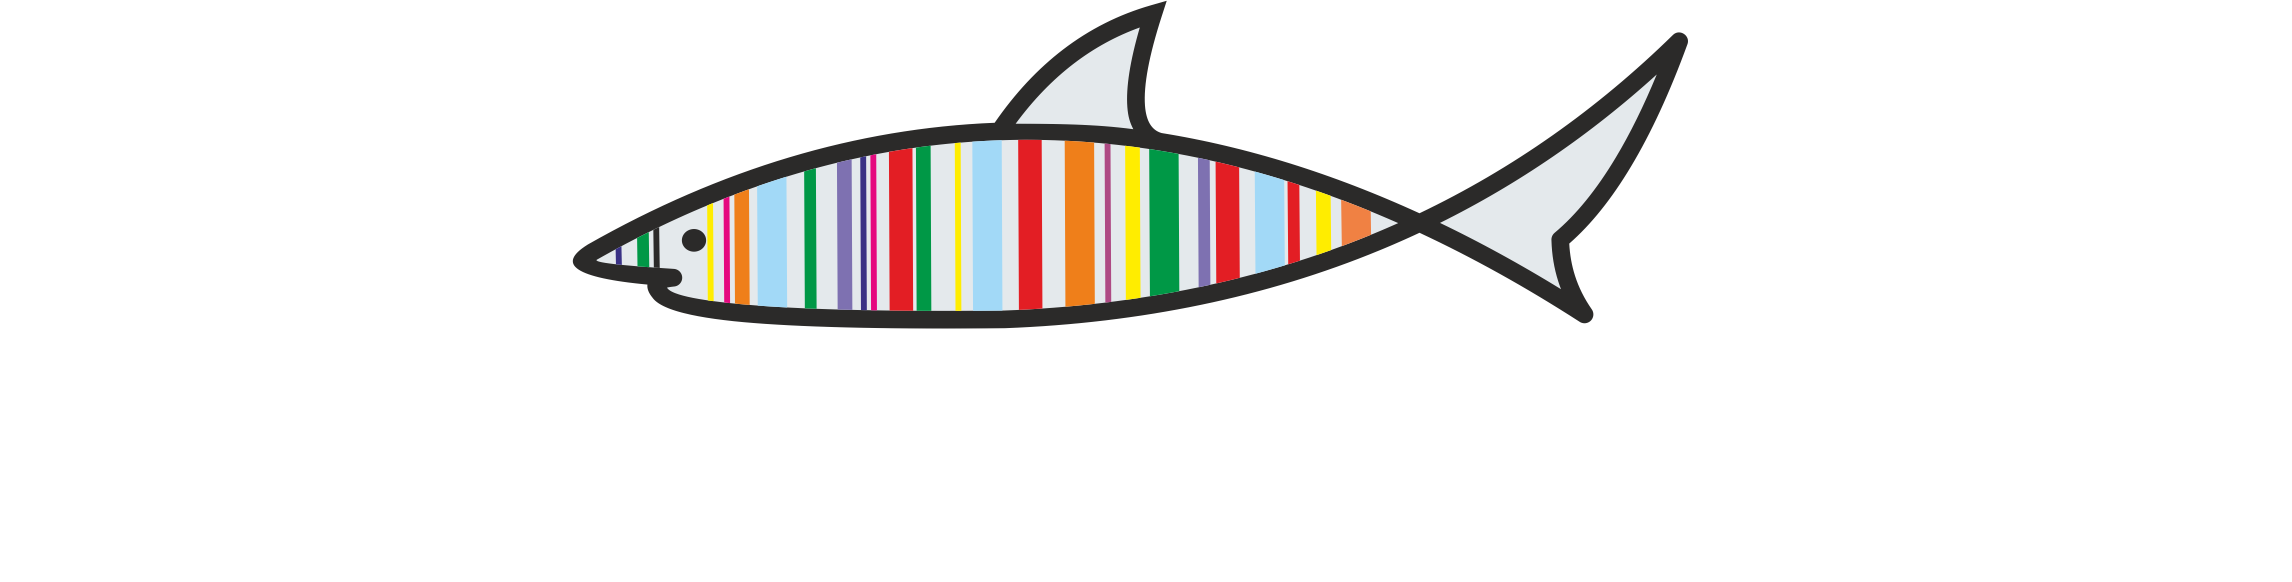 Color Shark logo